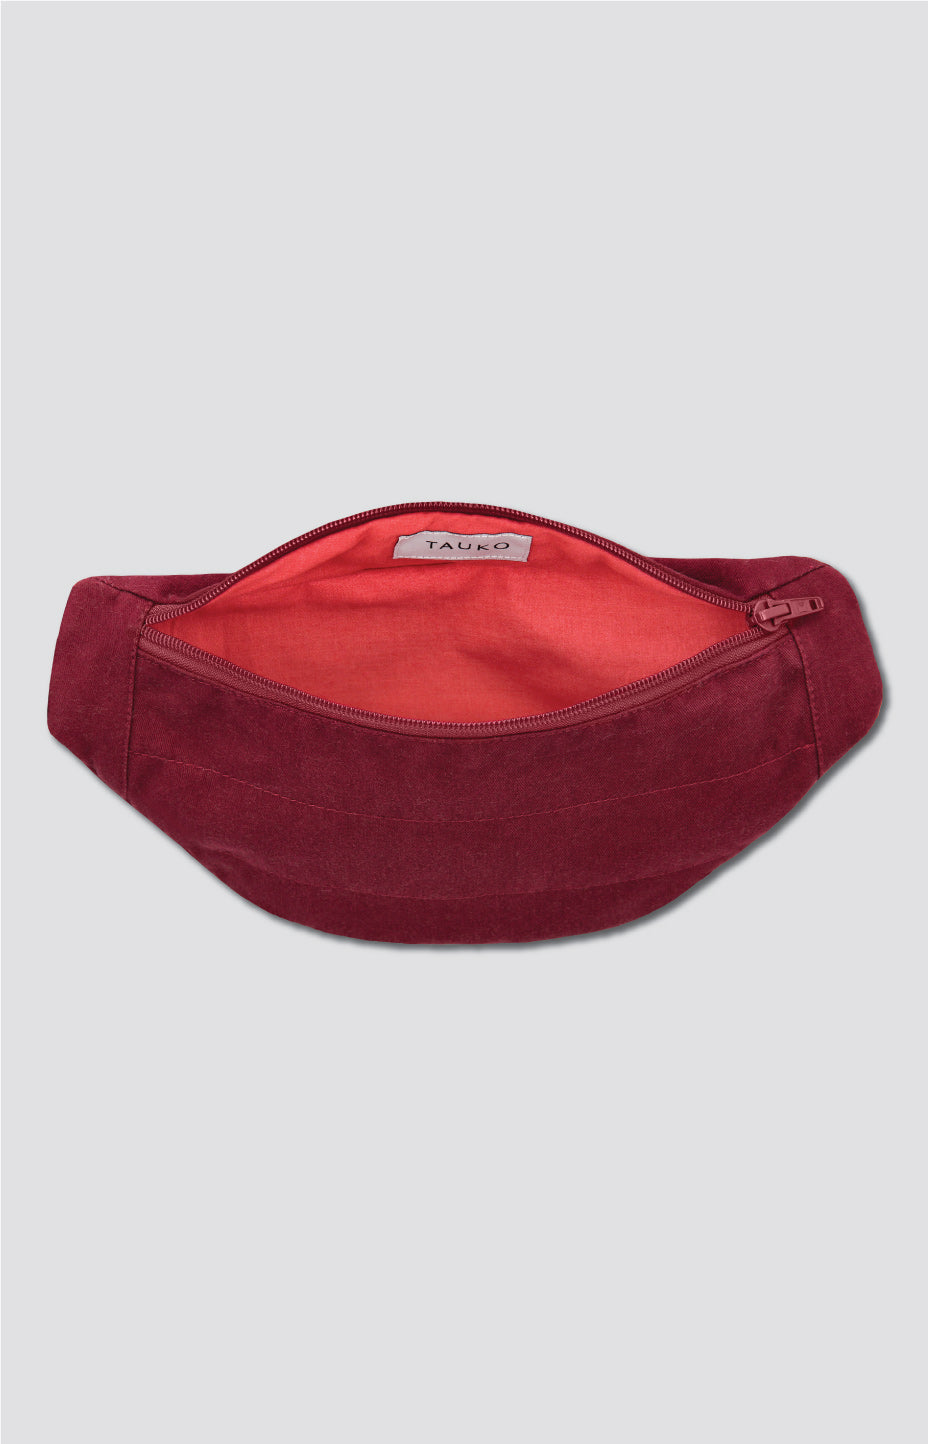 Ring belt bag cabernet red - Accessories - TAUKO - TAUKODESIGN